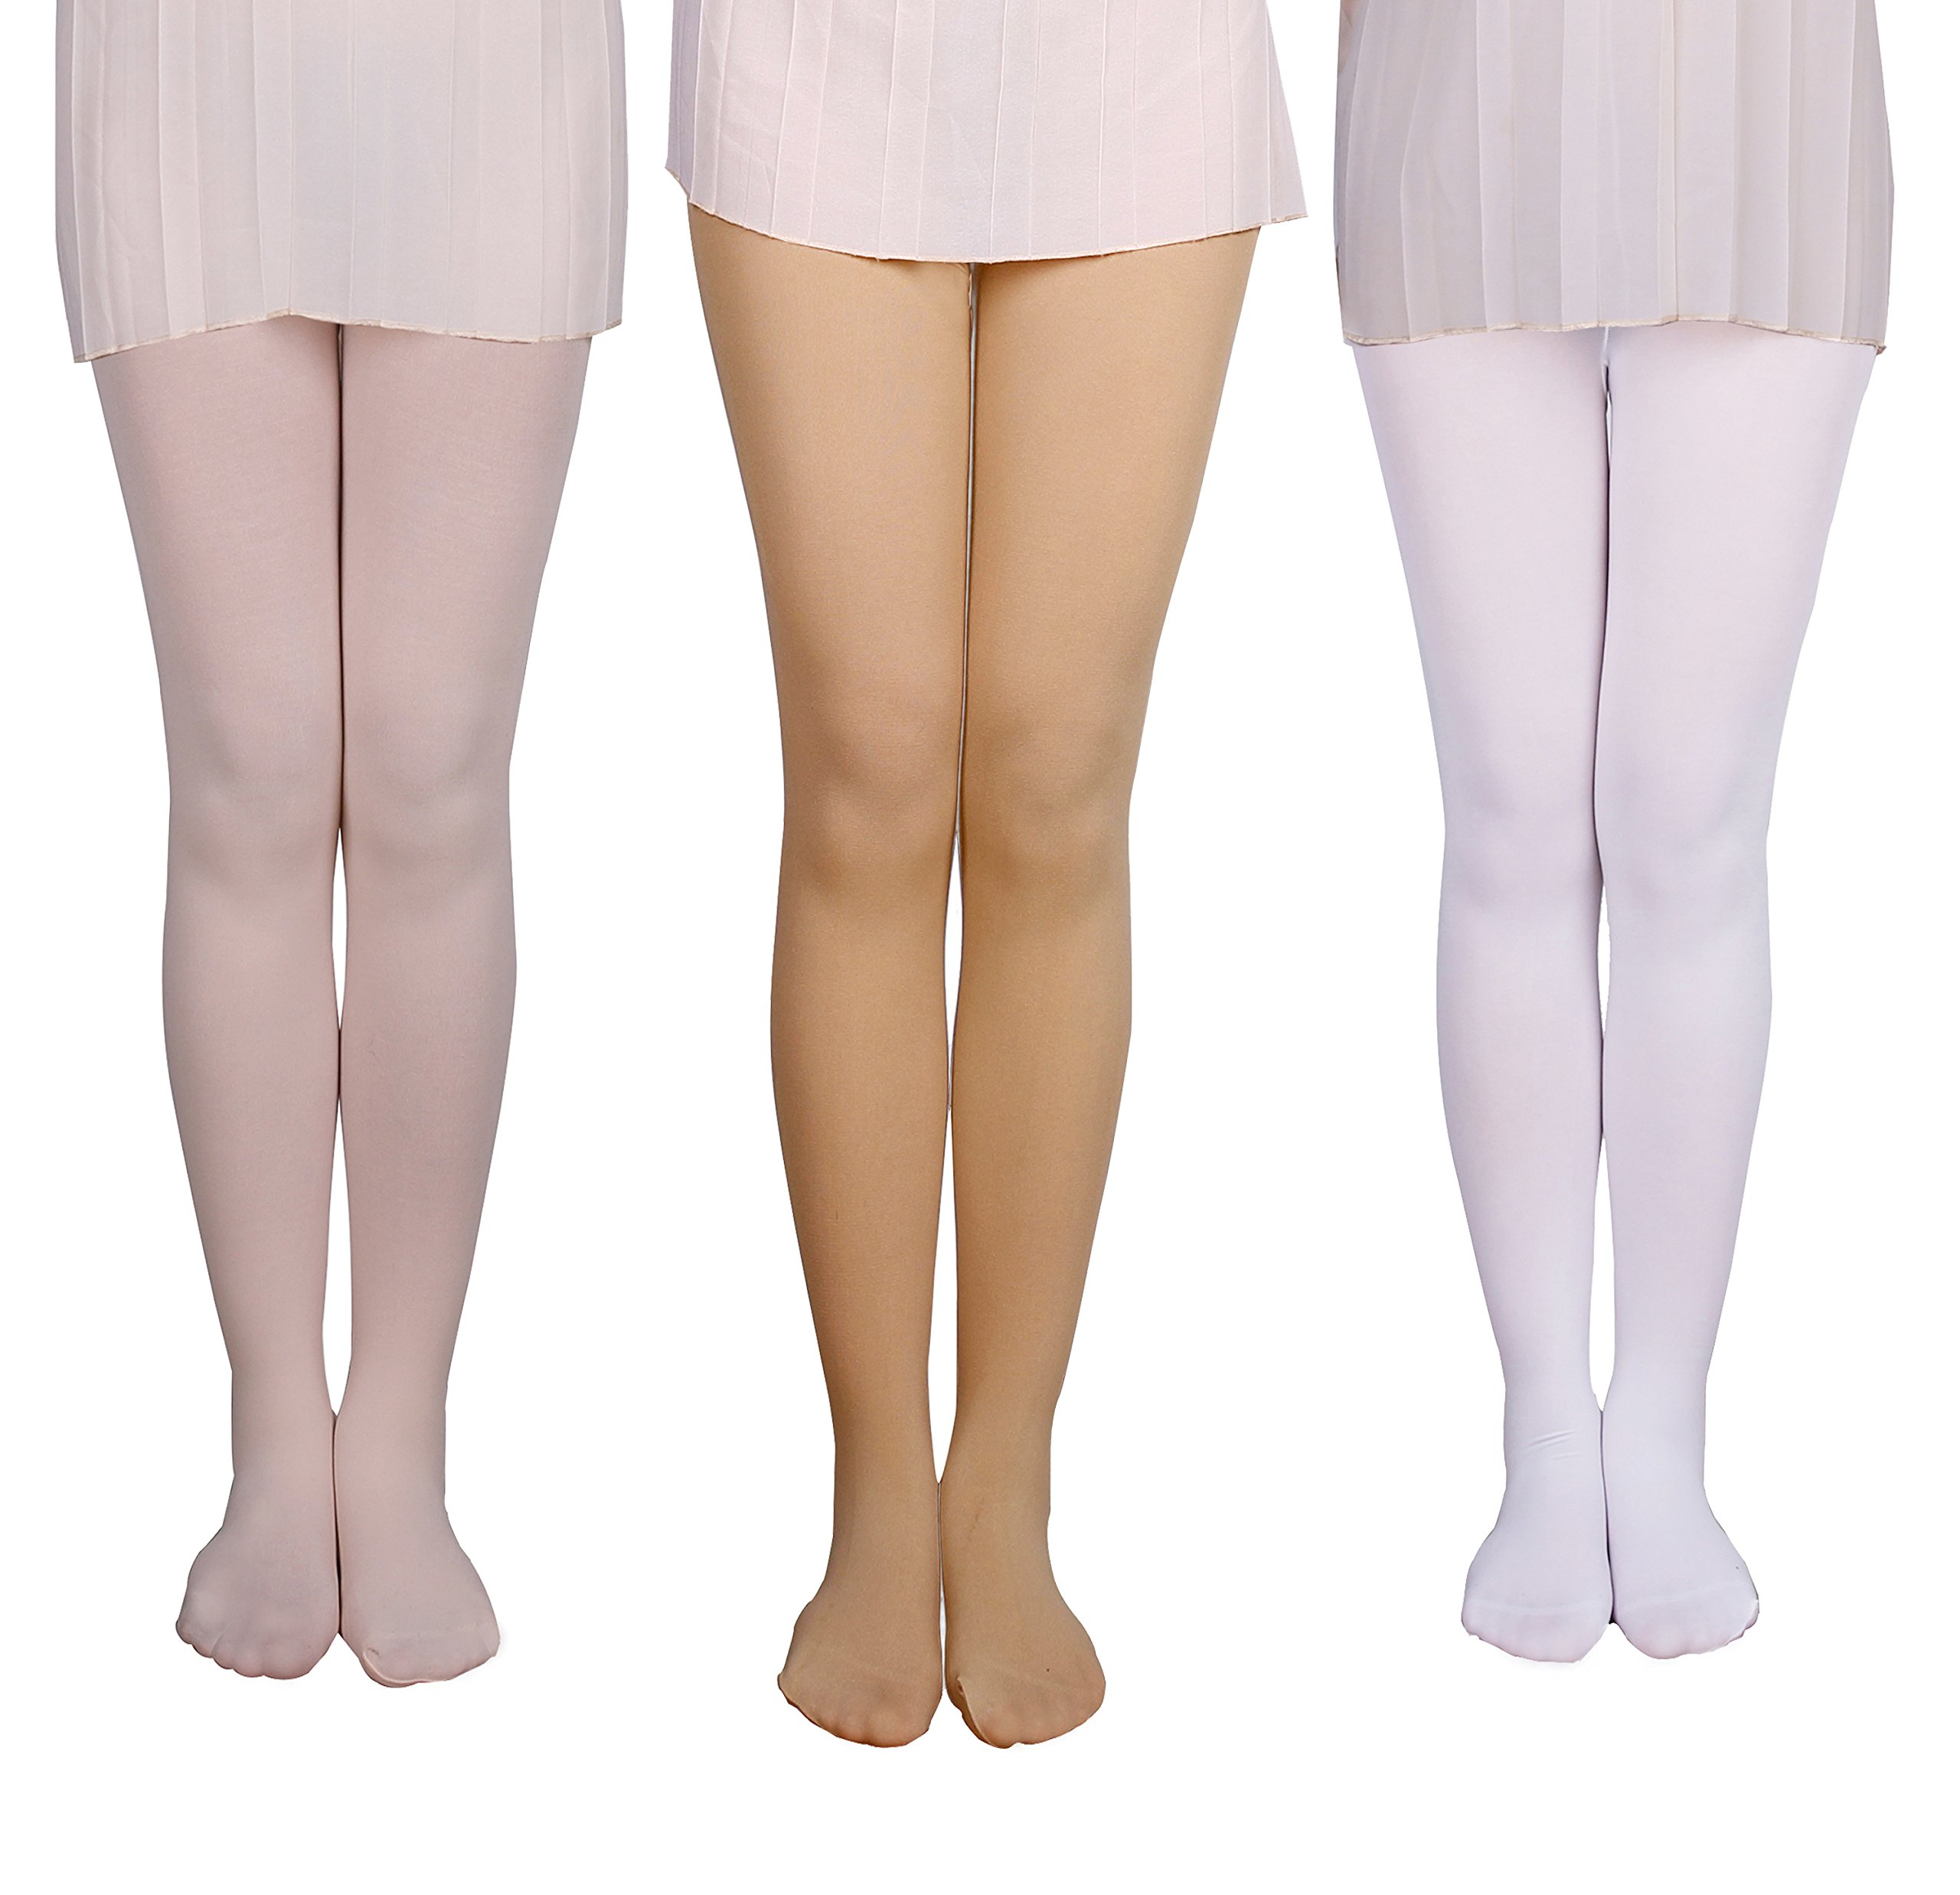 IRELIA Girls 3 Pack Tights Footed Ballet Dance Stocking 03 L